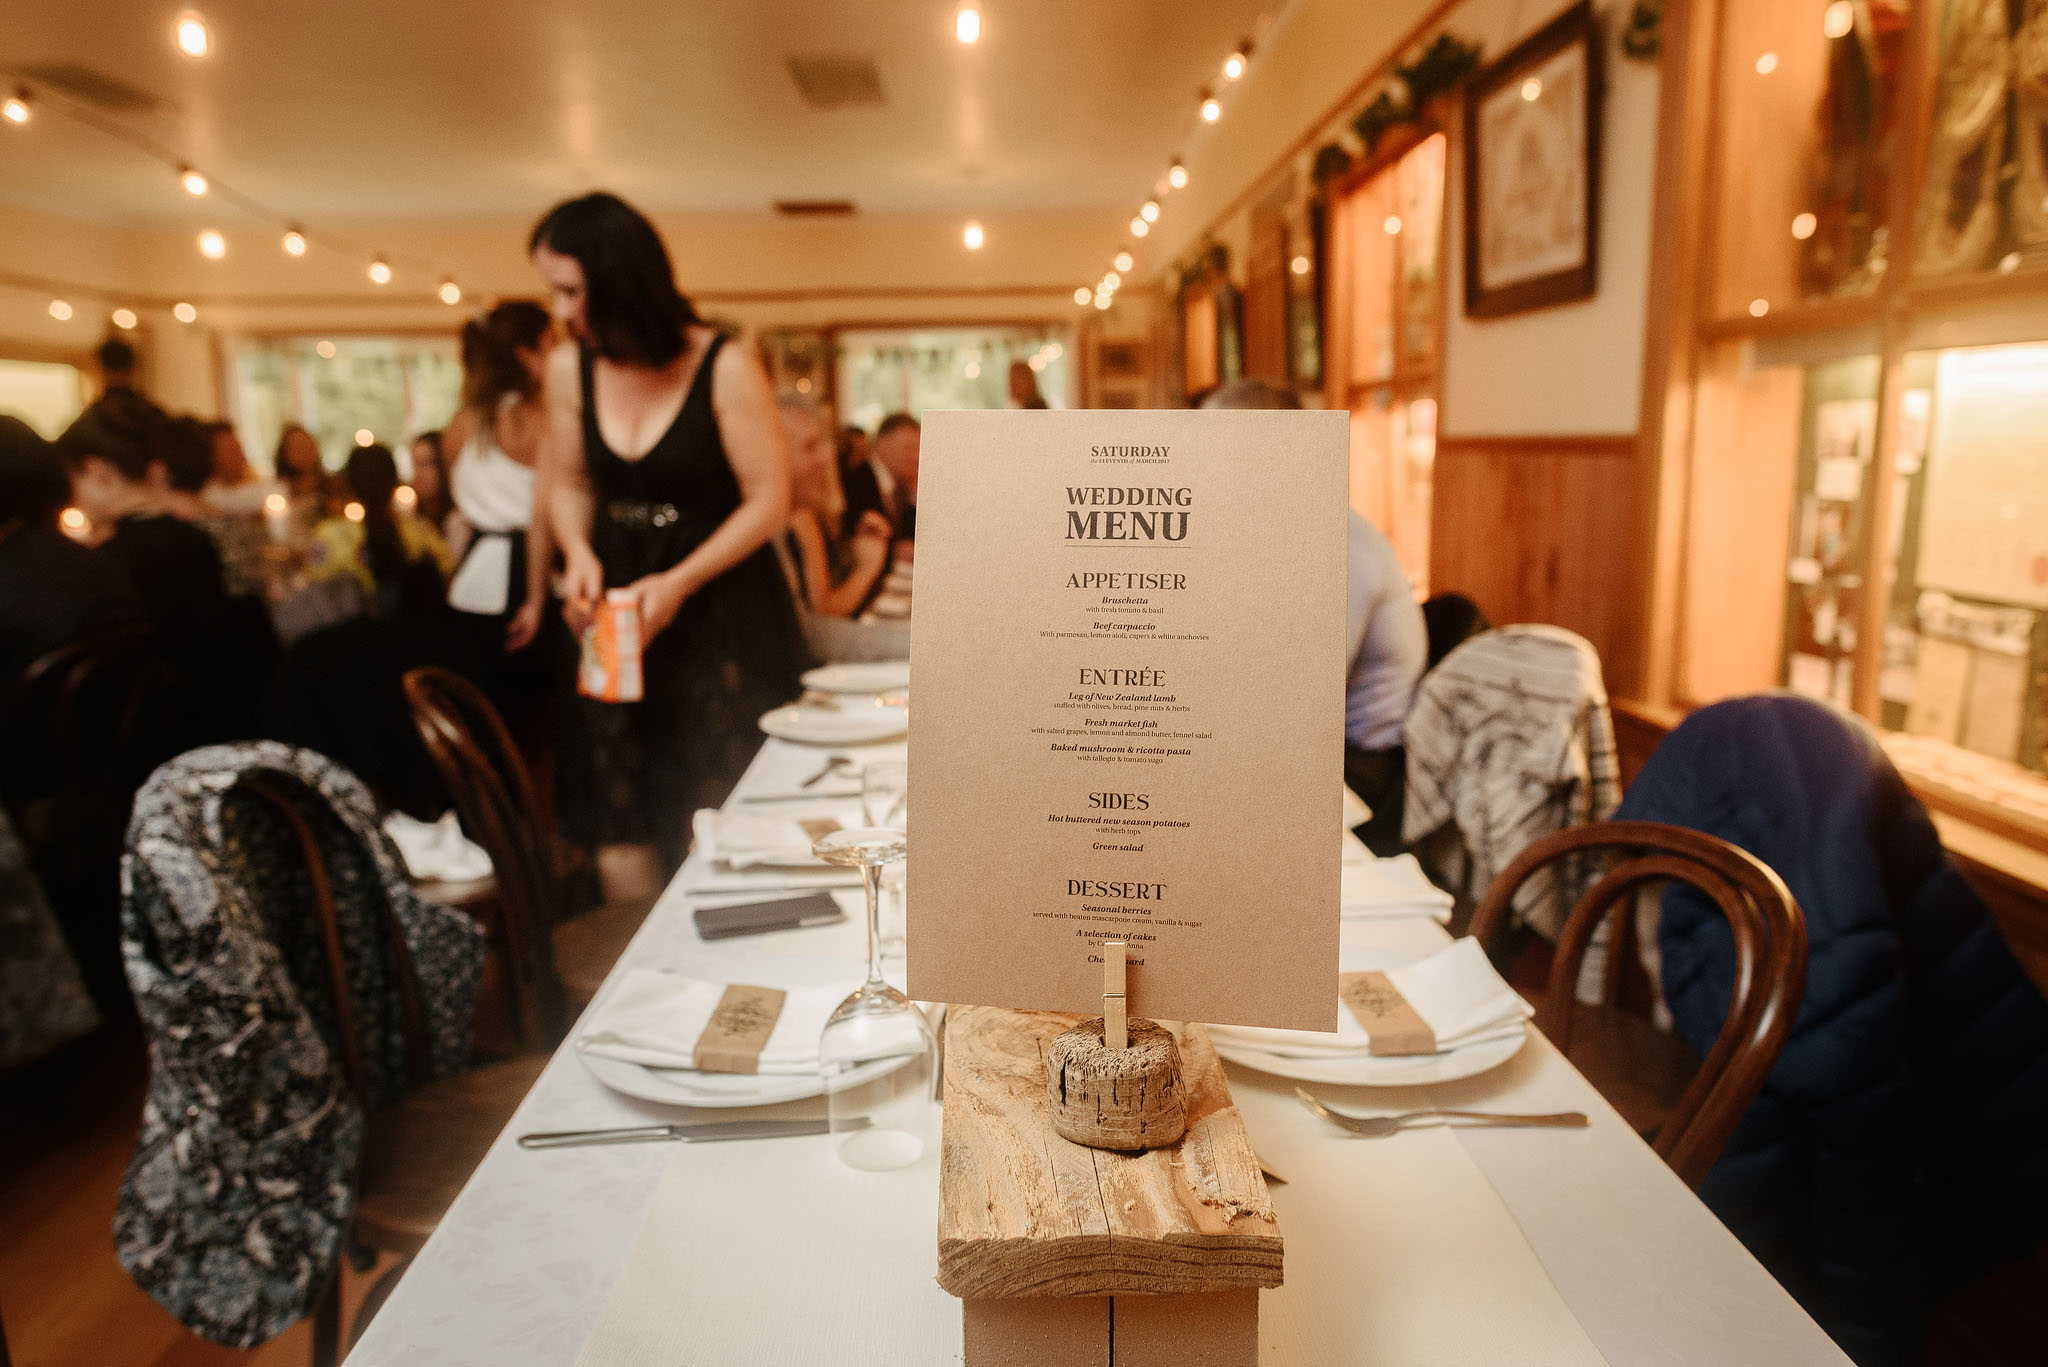 Menus at Ferrymead Historic Societies Hall